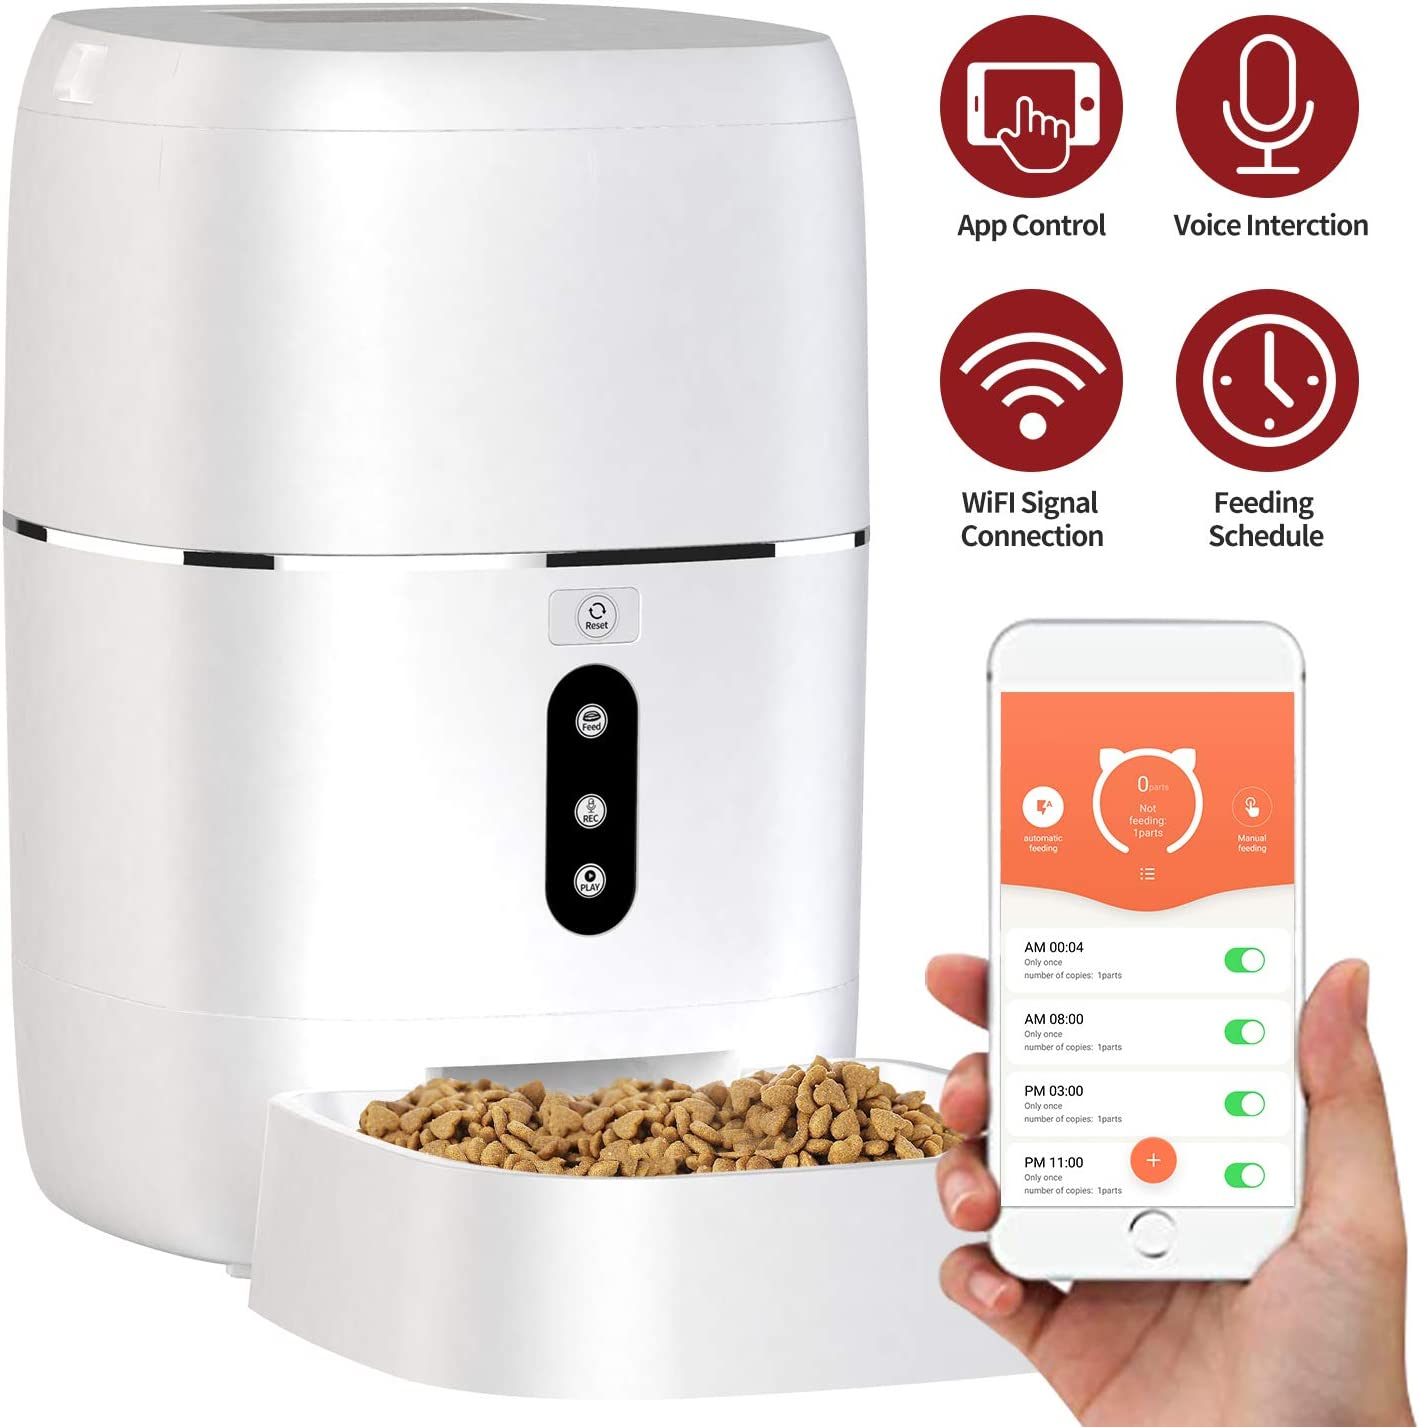 AIIYME Food Dispenser Dog Cat Feeder, Wi-Fi Enabled APP with Voice Recorder for iOS and Android, Programmable Timer for up to 6 Meals per Day 6L Food Capacity, Dual Power Mode